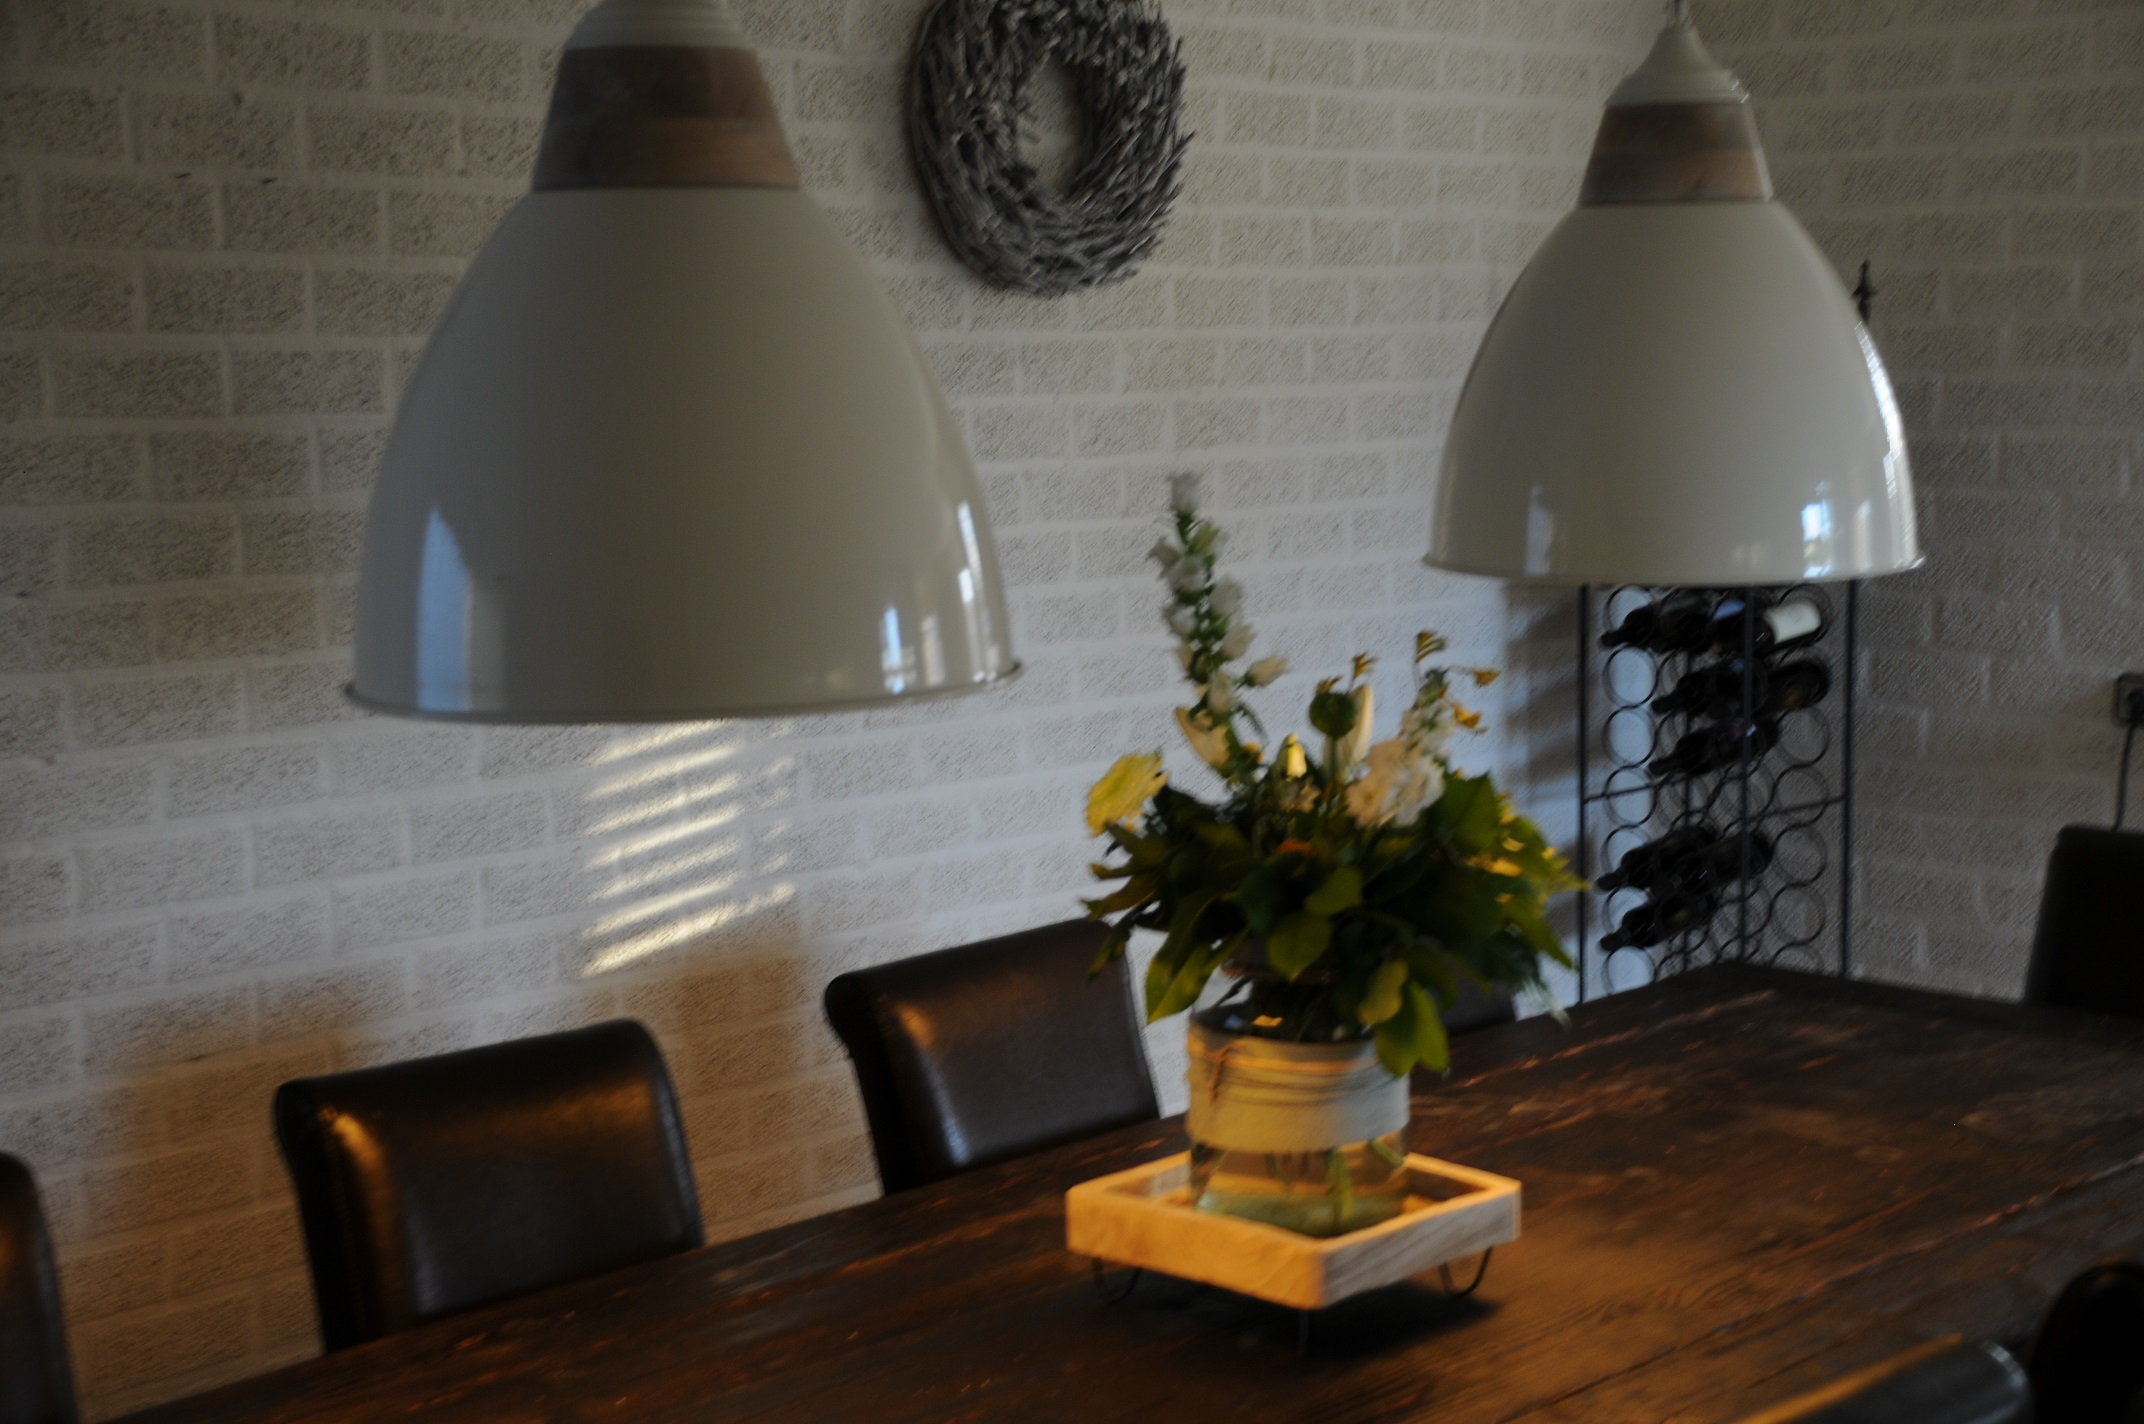 By Boo Lampen : Prachtige by boo hanglamp metaal room wit hout afzetting